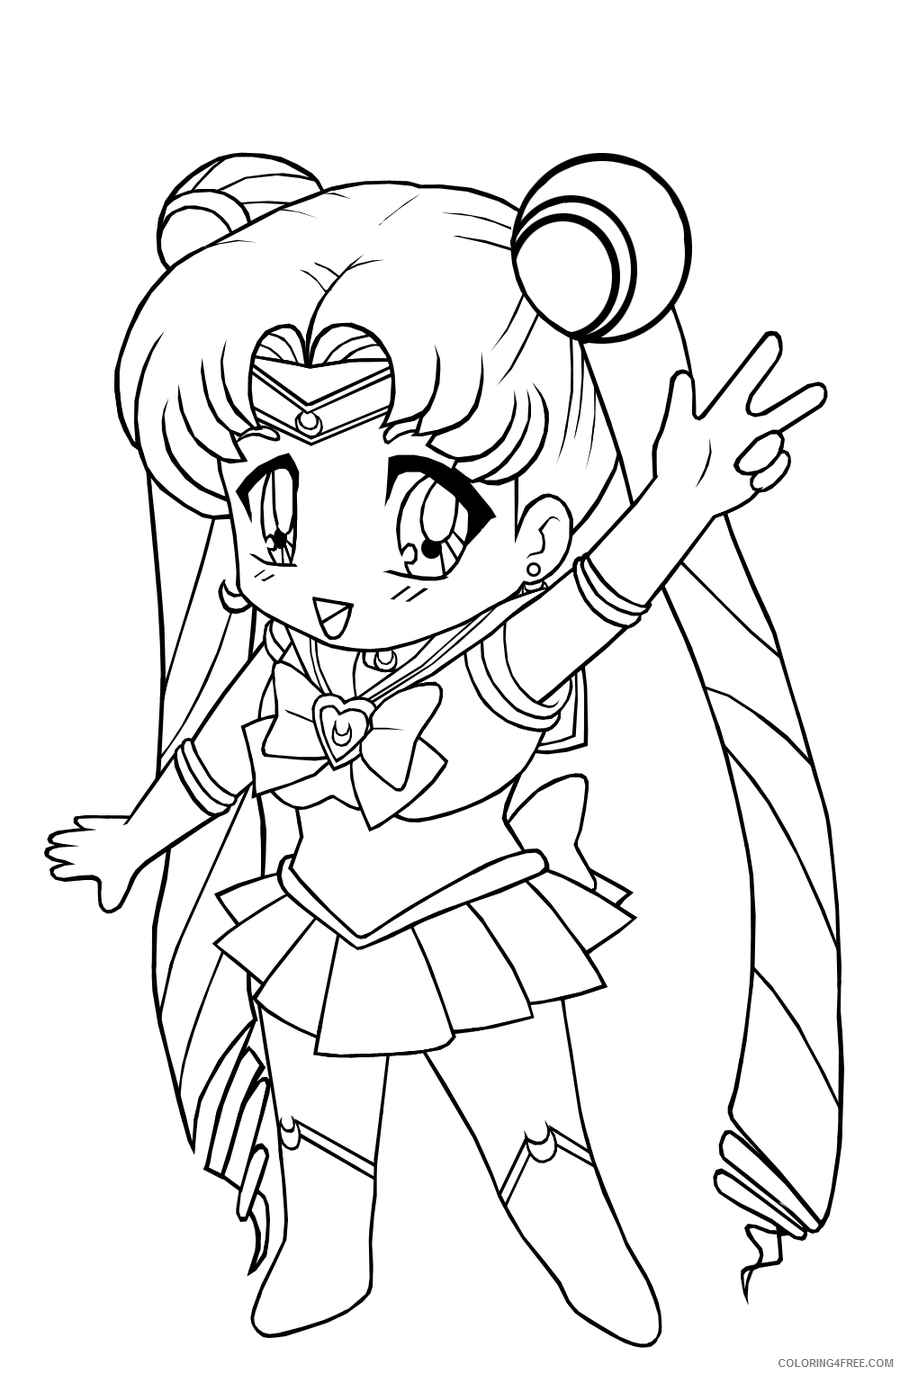 chibi sailor moon coloring pages Coloring4free